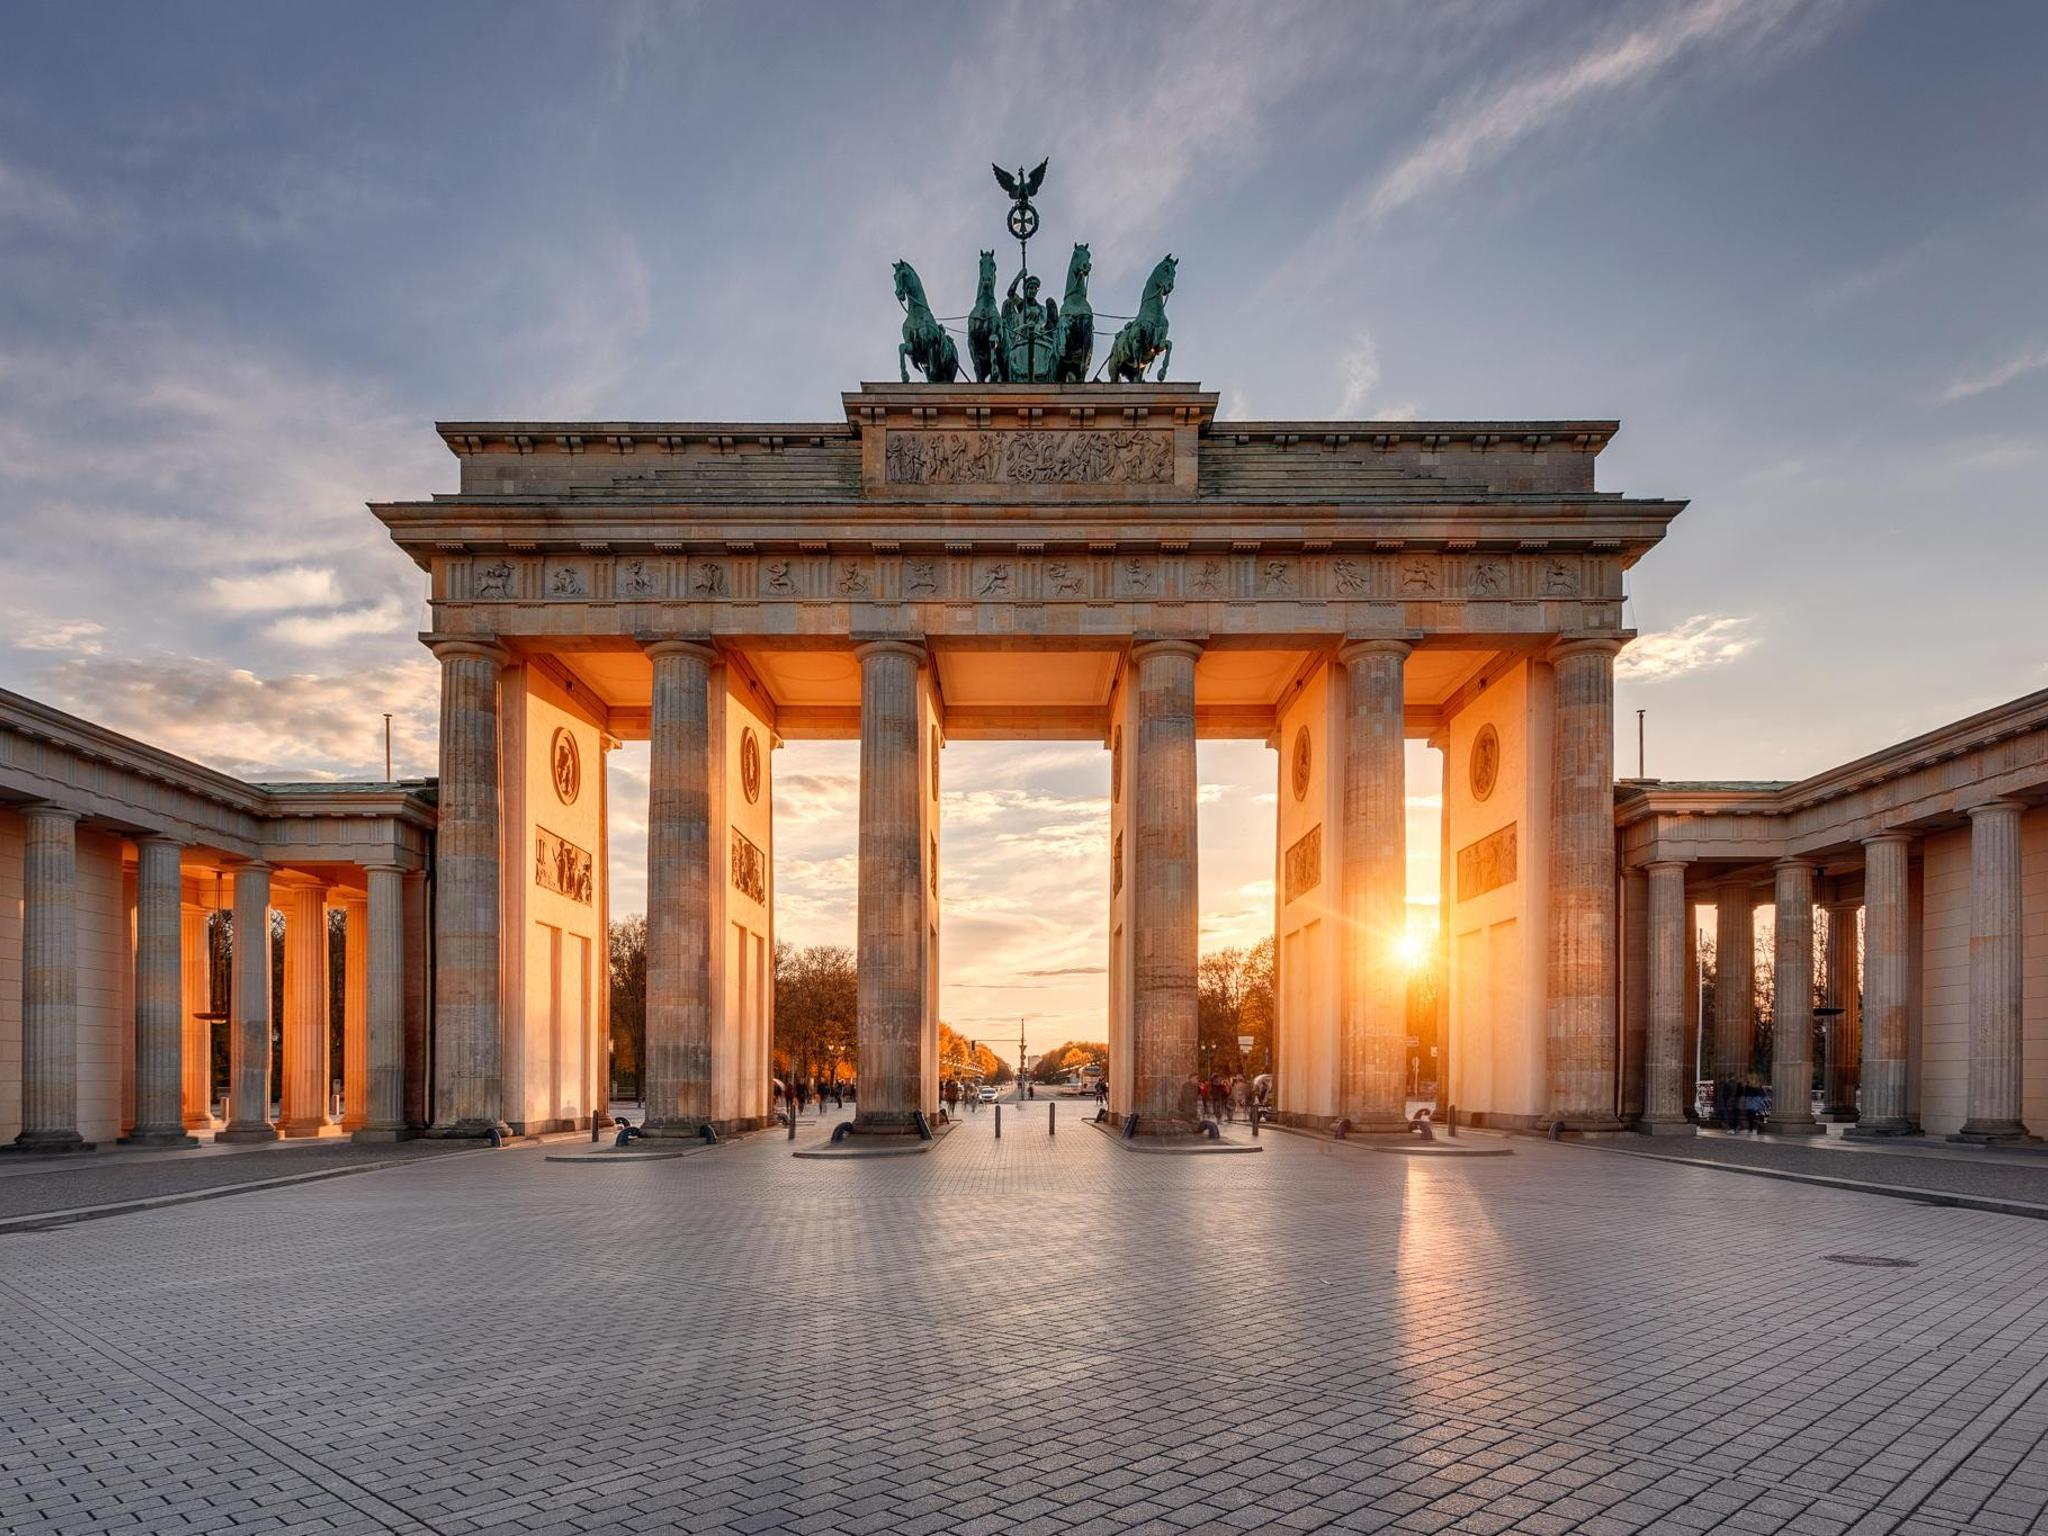 Where to stay near Berlin's Brandenburg Gate